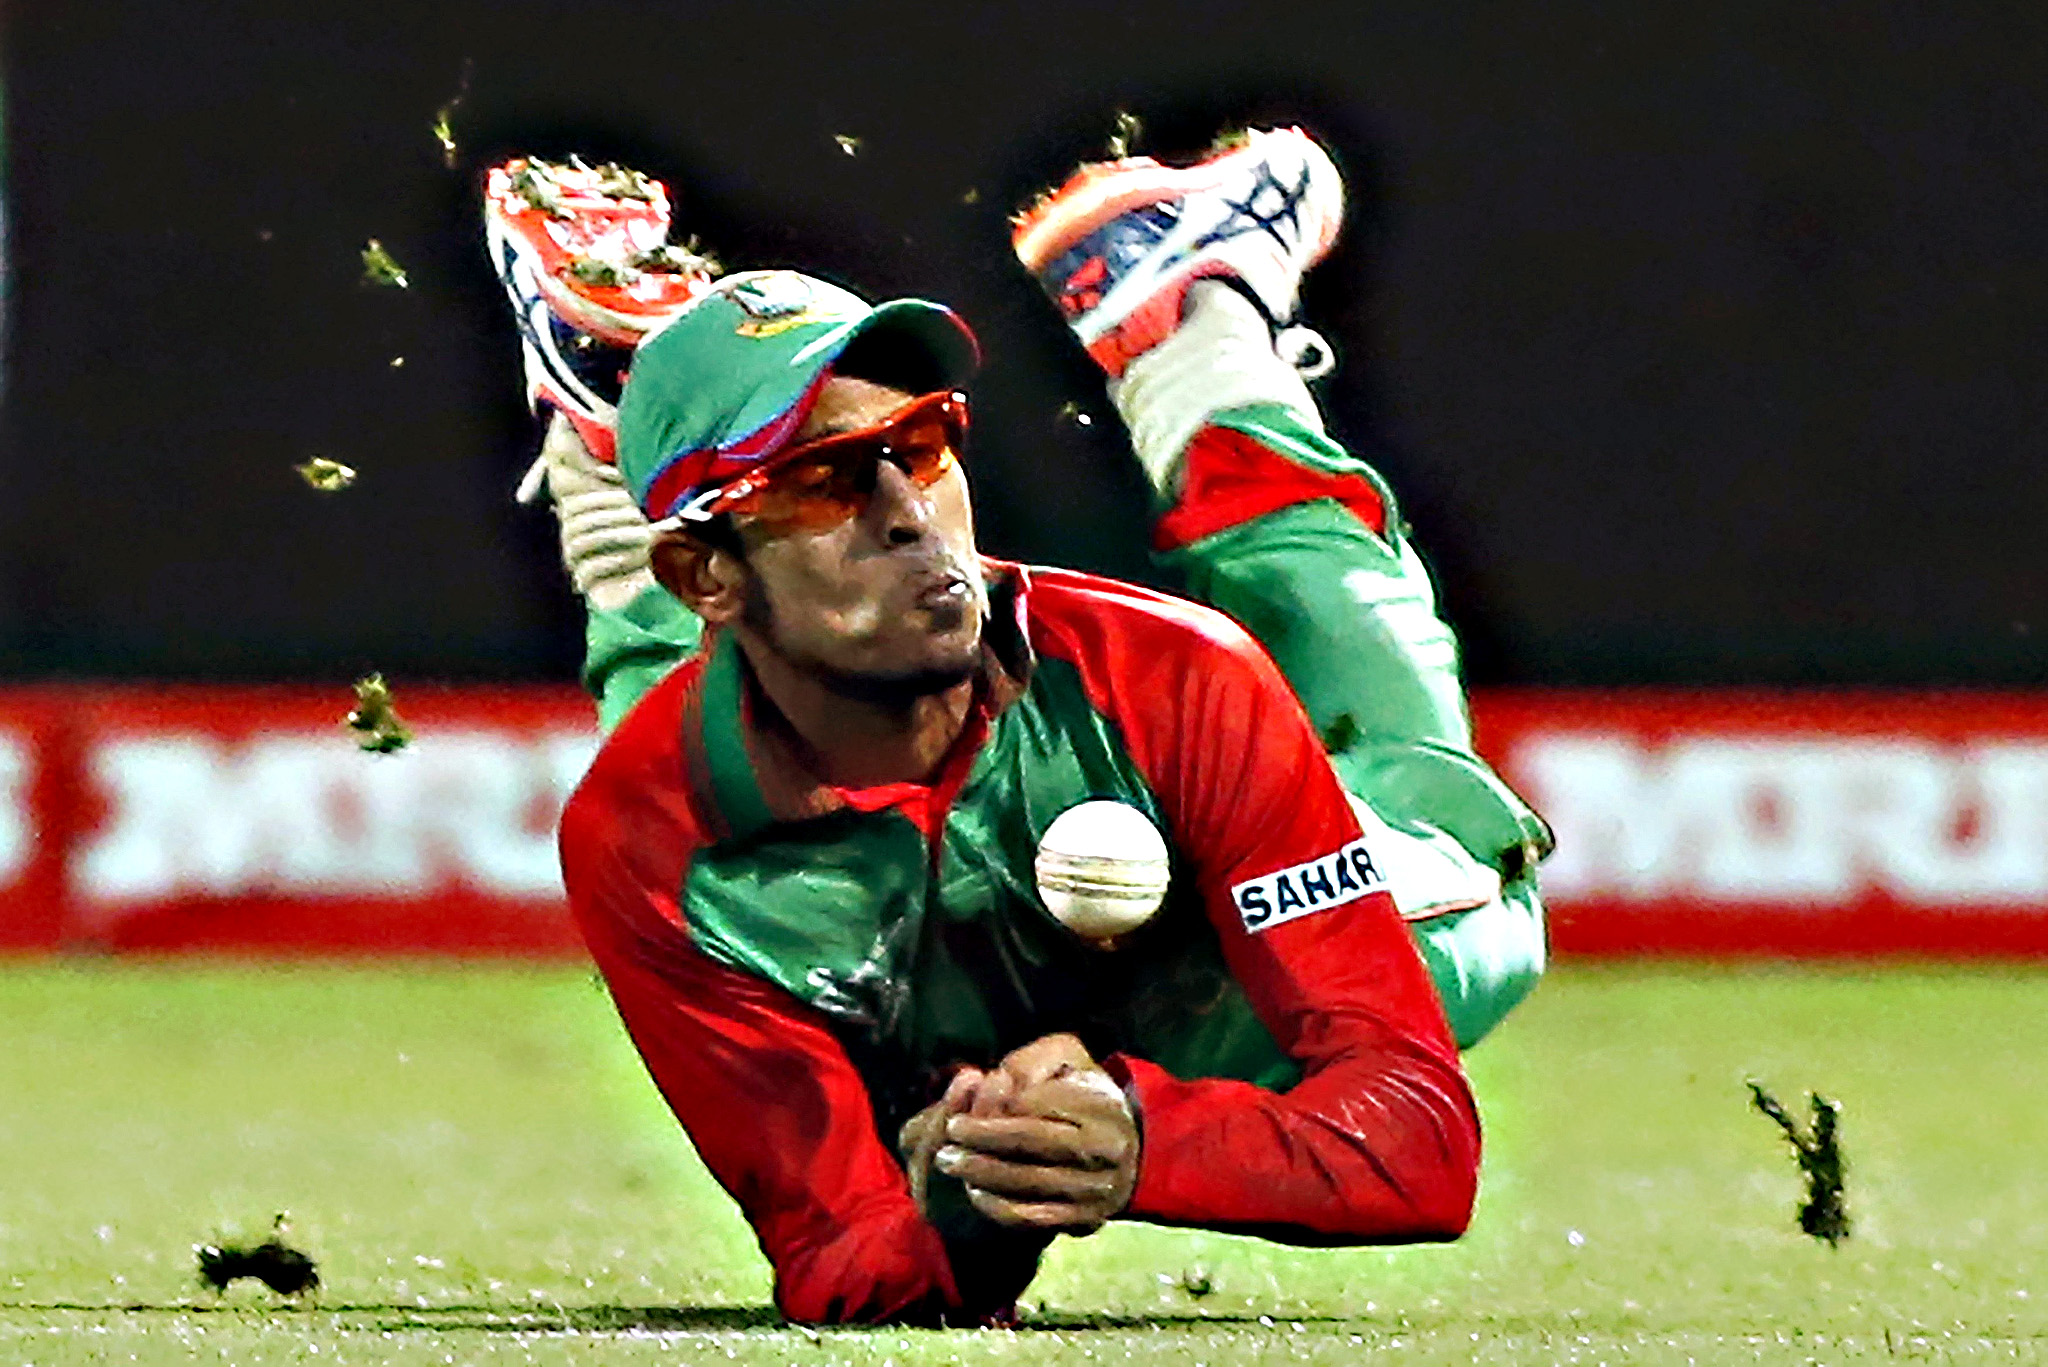 Bangladesh's Nasir Hossain drops a catch from New Zealand's Cory Anderson during their Cricket World Cup match in Hamilton, Friday